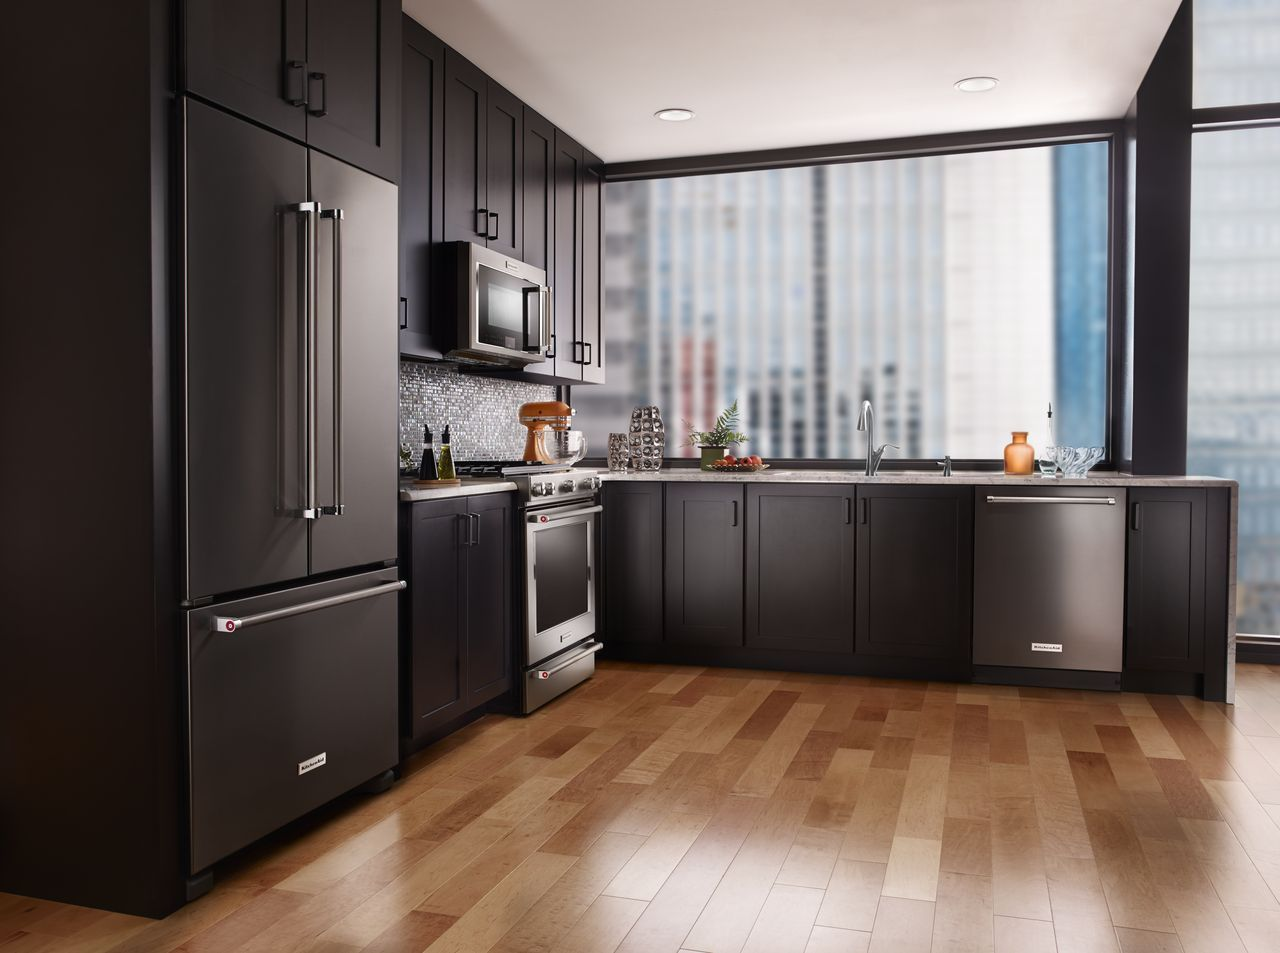 Whats The Next Big Trend For Kitchen Appliances After Stainless Steel Ends